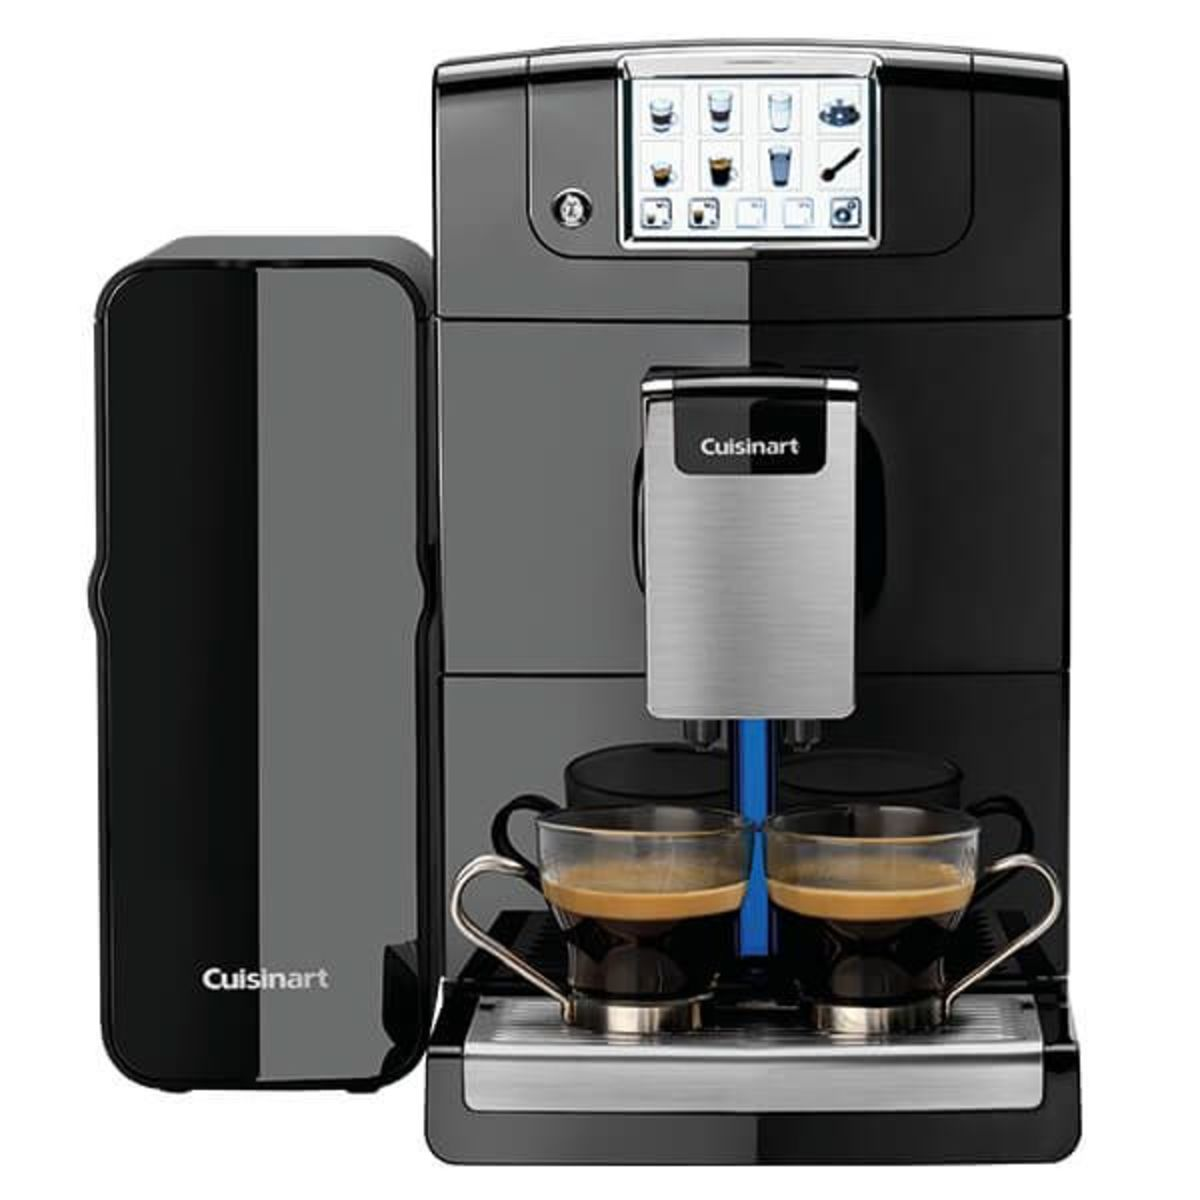 Image of Cuisinart EM1000U Veloce Bean to Cup Coffee Machine